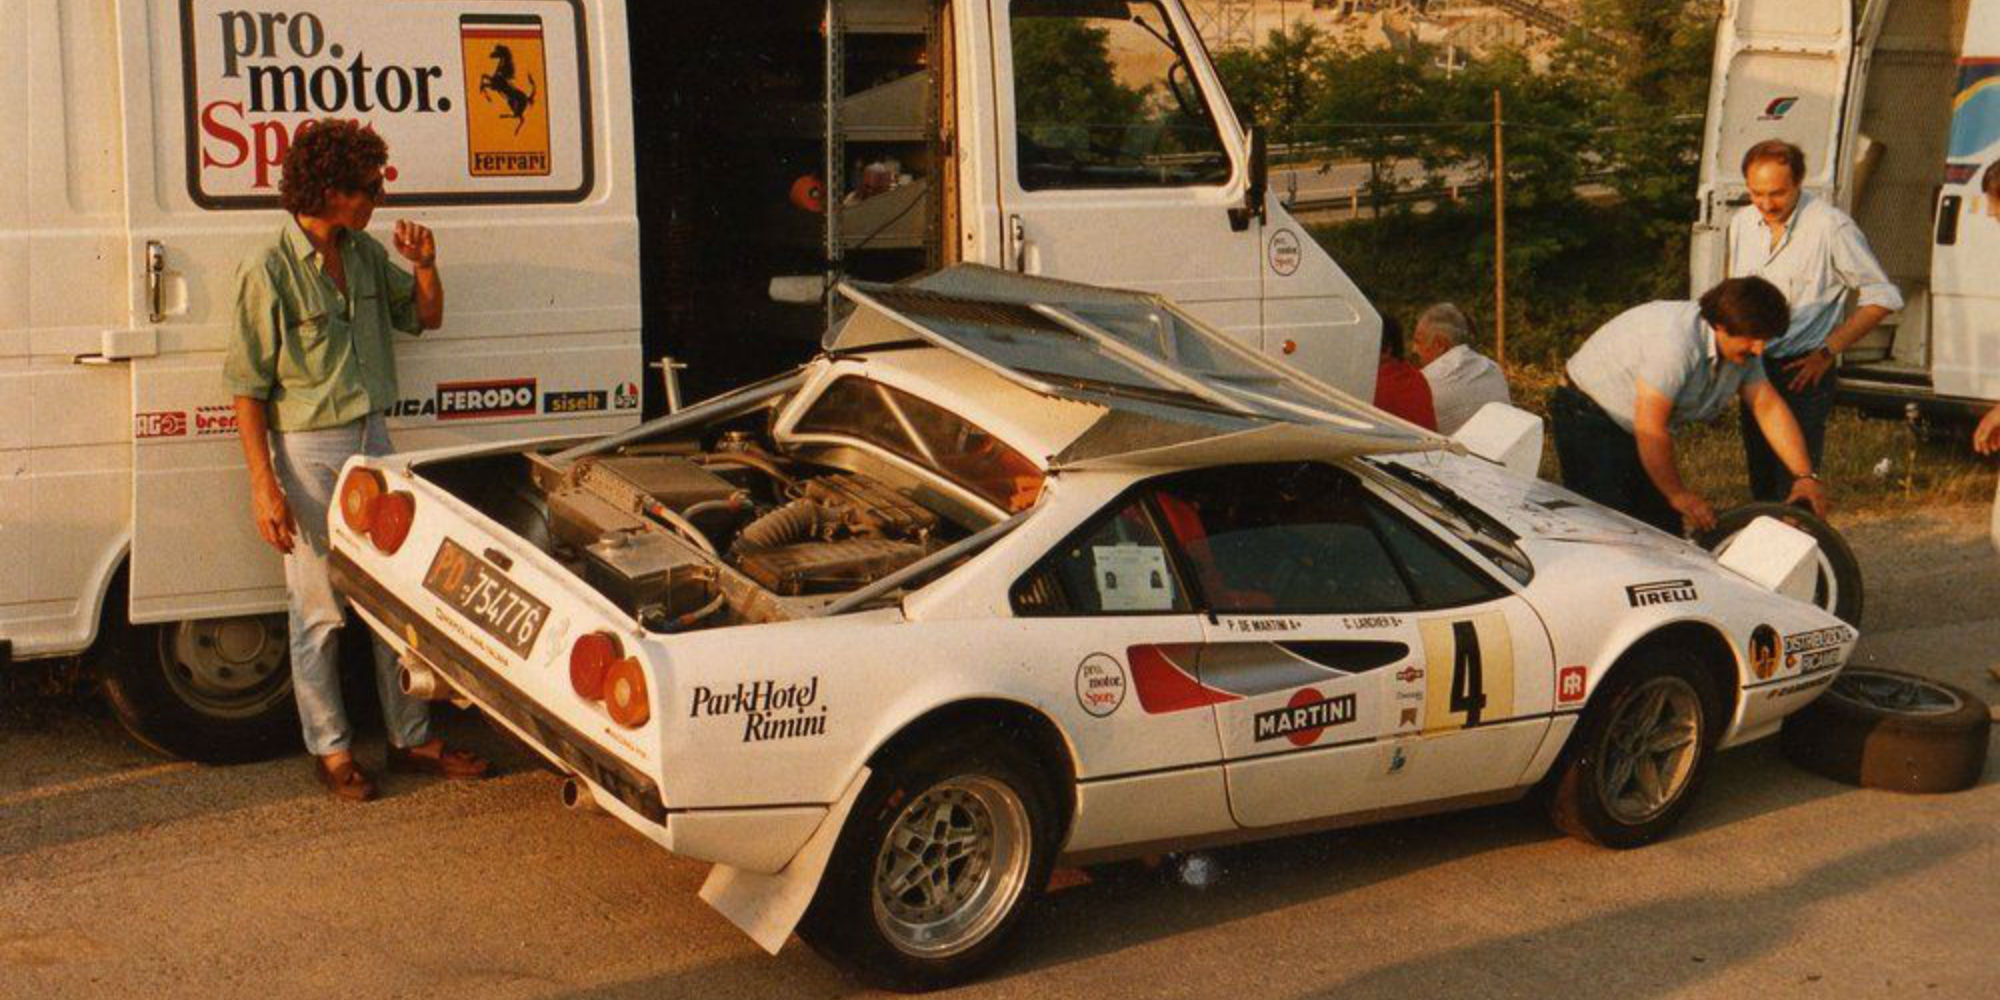 The Ex – World and European Rally Championship 1978 Ferrari 308 GTB ProMotorSport Group B